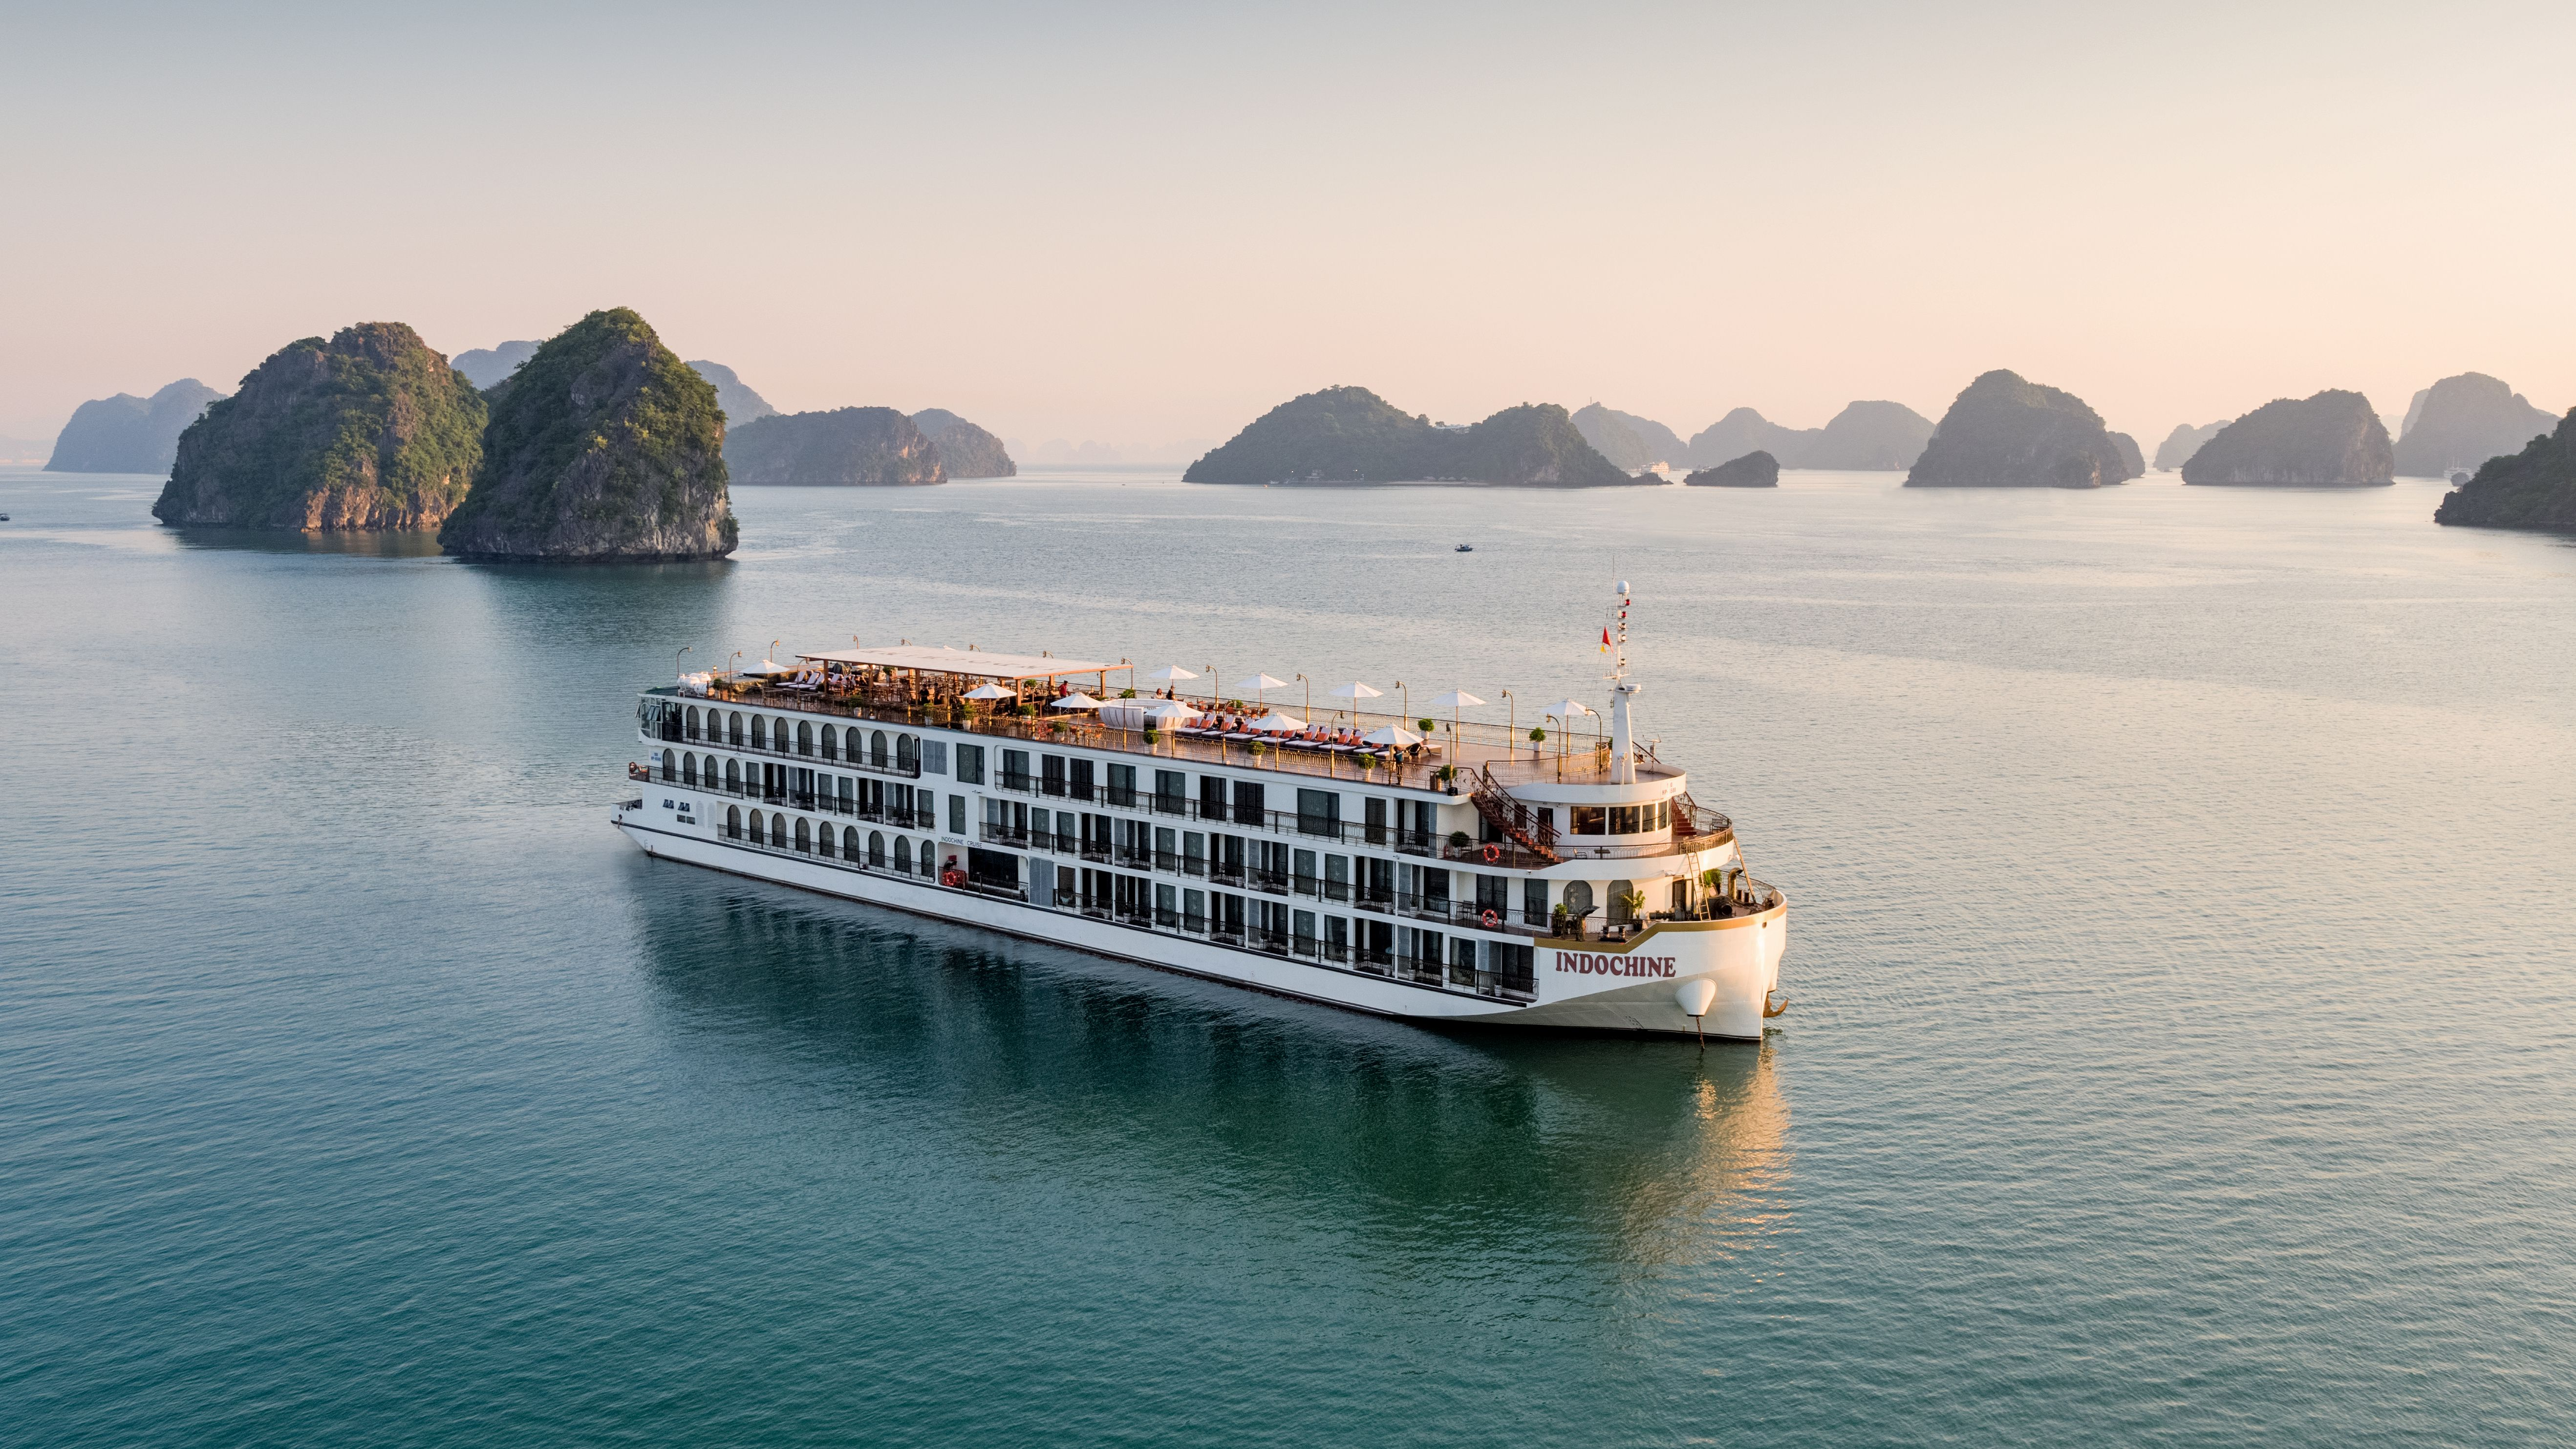 Indochina Sails to Attend 2020 Fitur Tourism Fair in Madrid